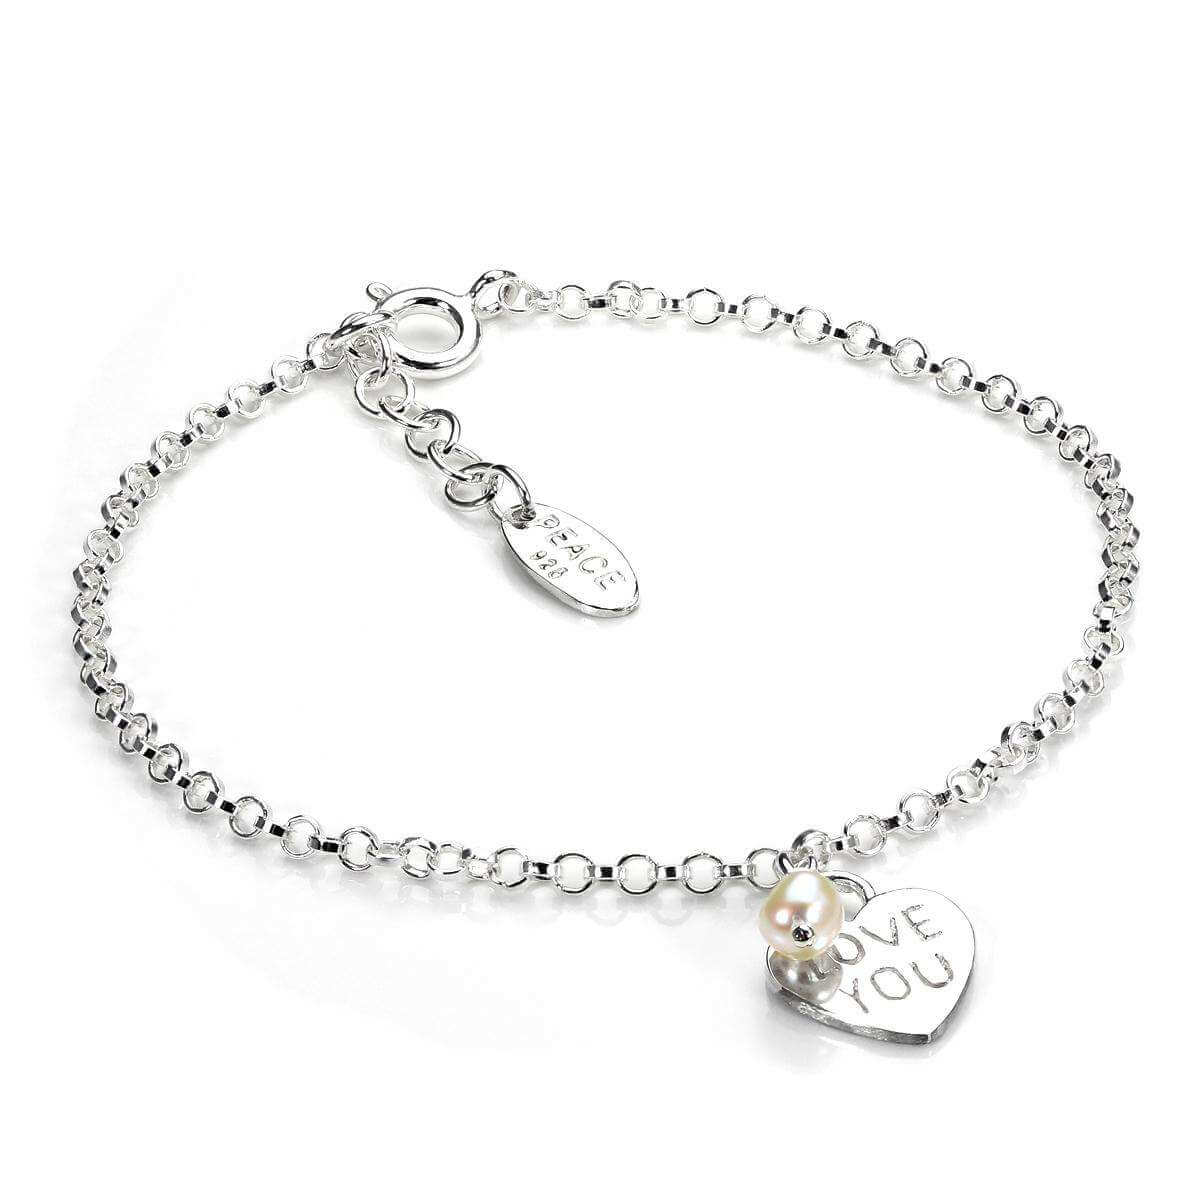 Sterling Silver Rolo Chain Bracelet with Love You Heart Charm